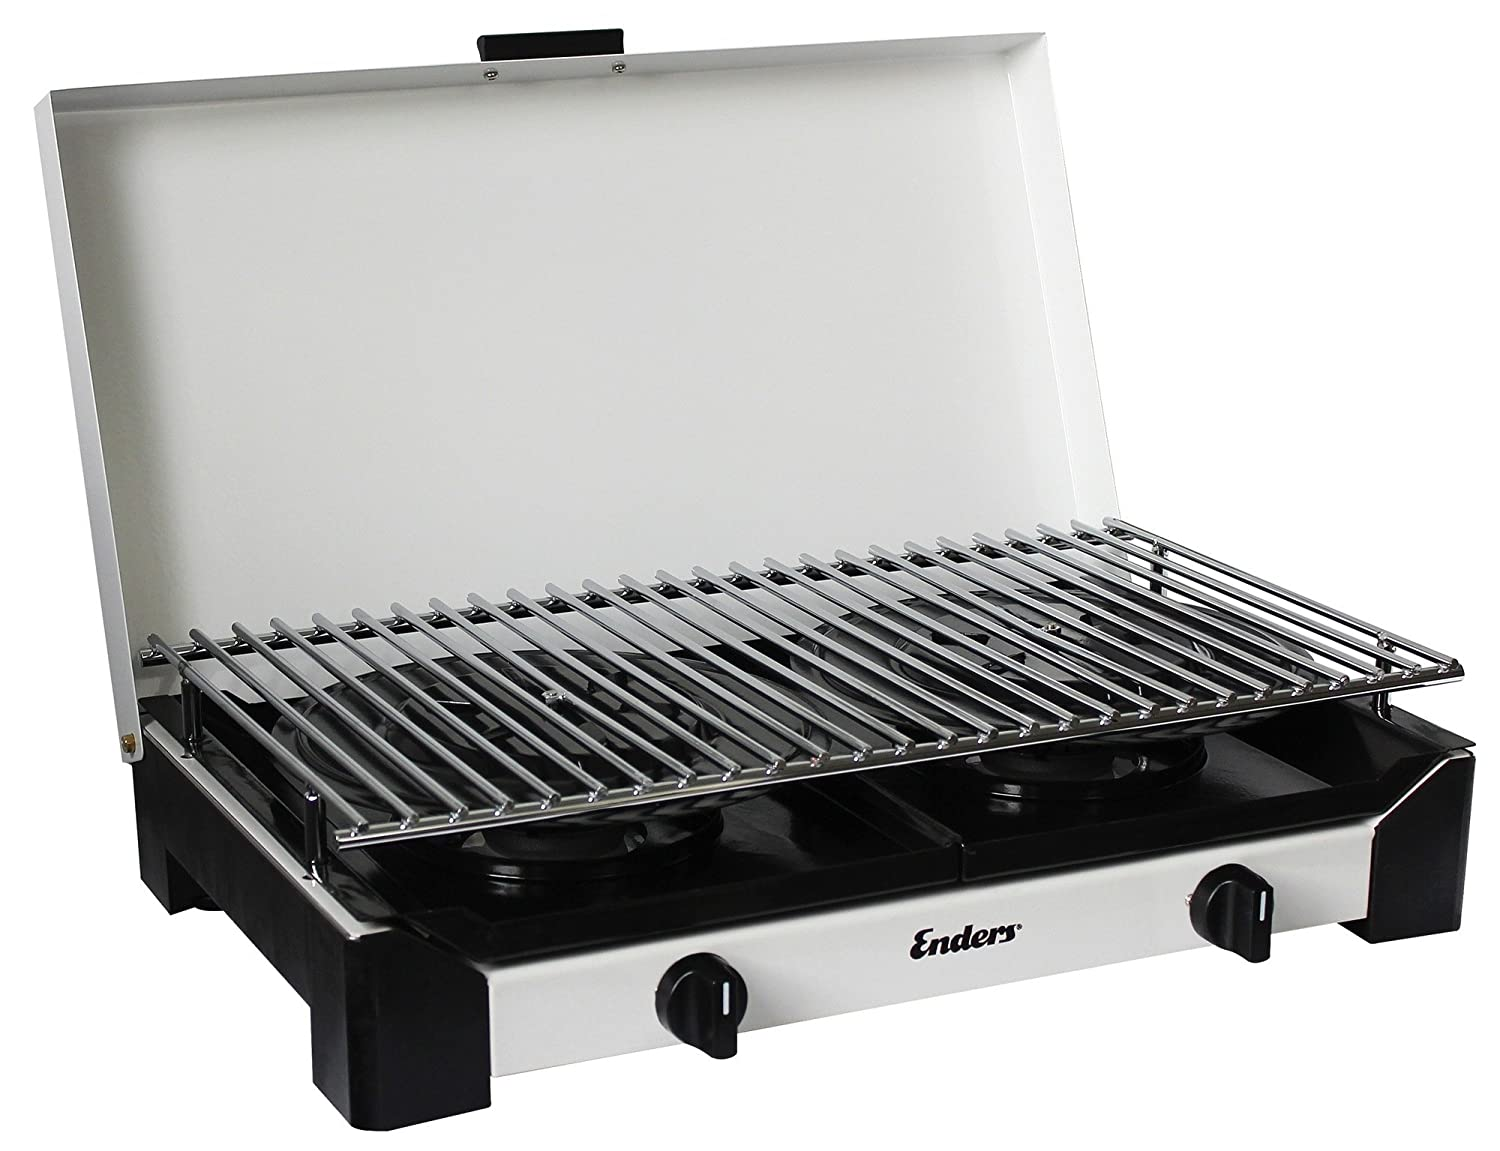 Enders Gasgrill Camping : Enders 1786 campingkocher grill sydney mit zs 2 flammig: amazon.de